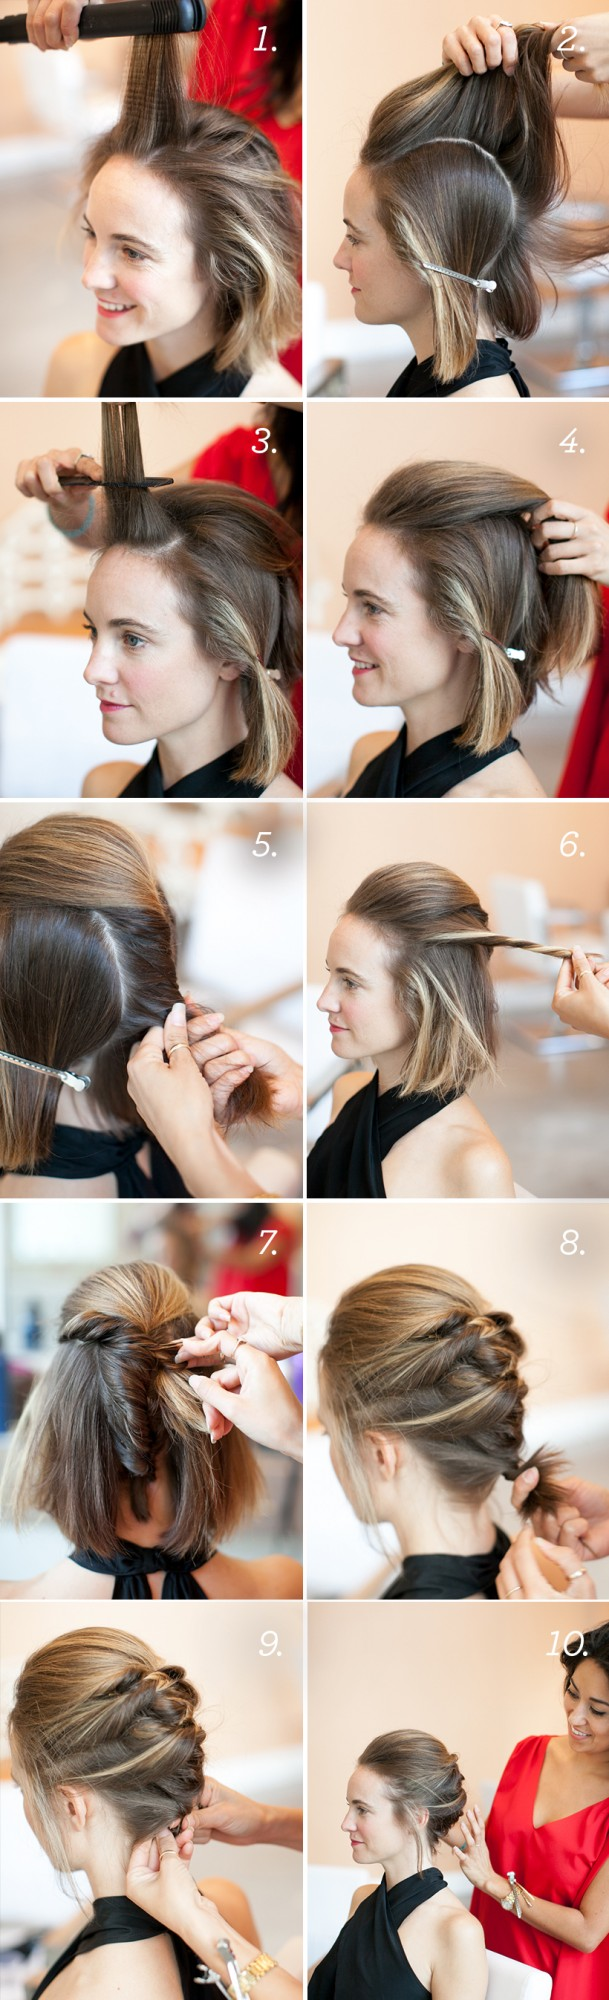 hairstyles (12)